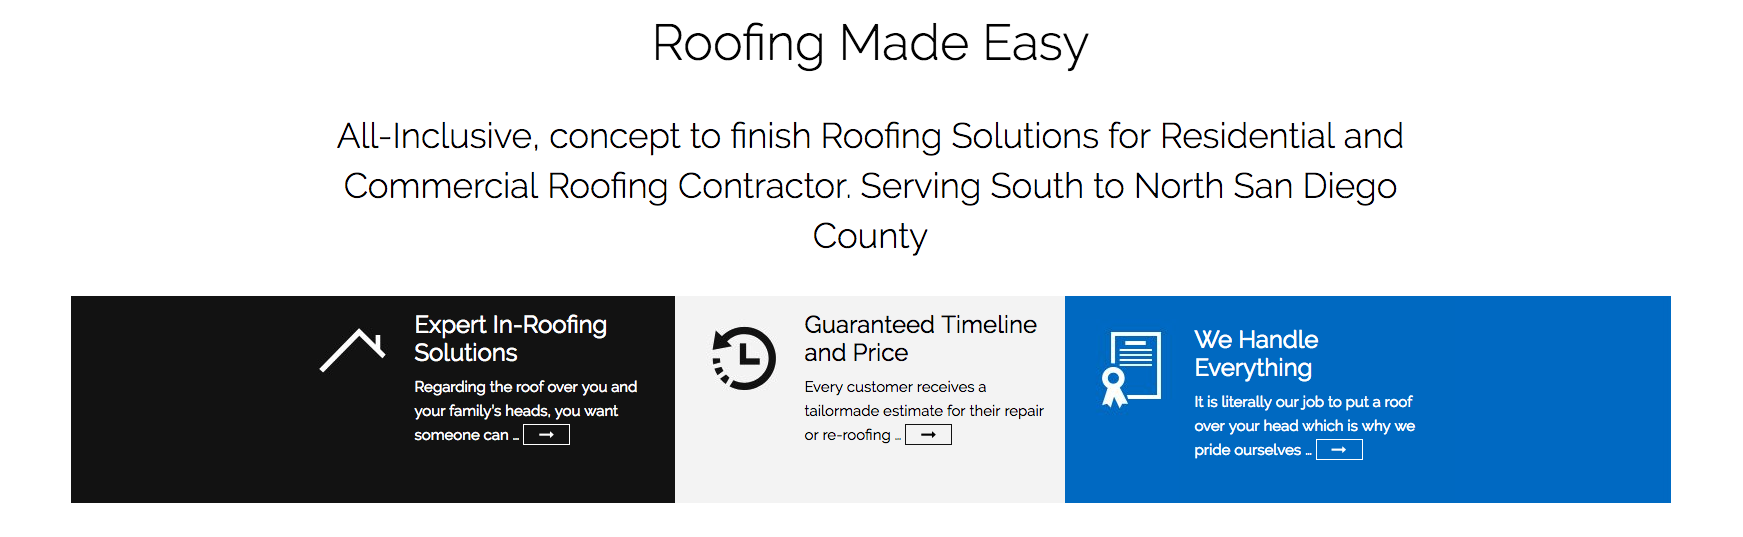 San Diego Roofers, Roofers in San Diego, Roofers in San Diego Ca, San Diego Ca Roofers,